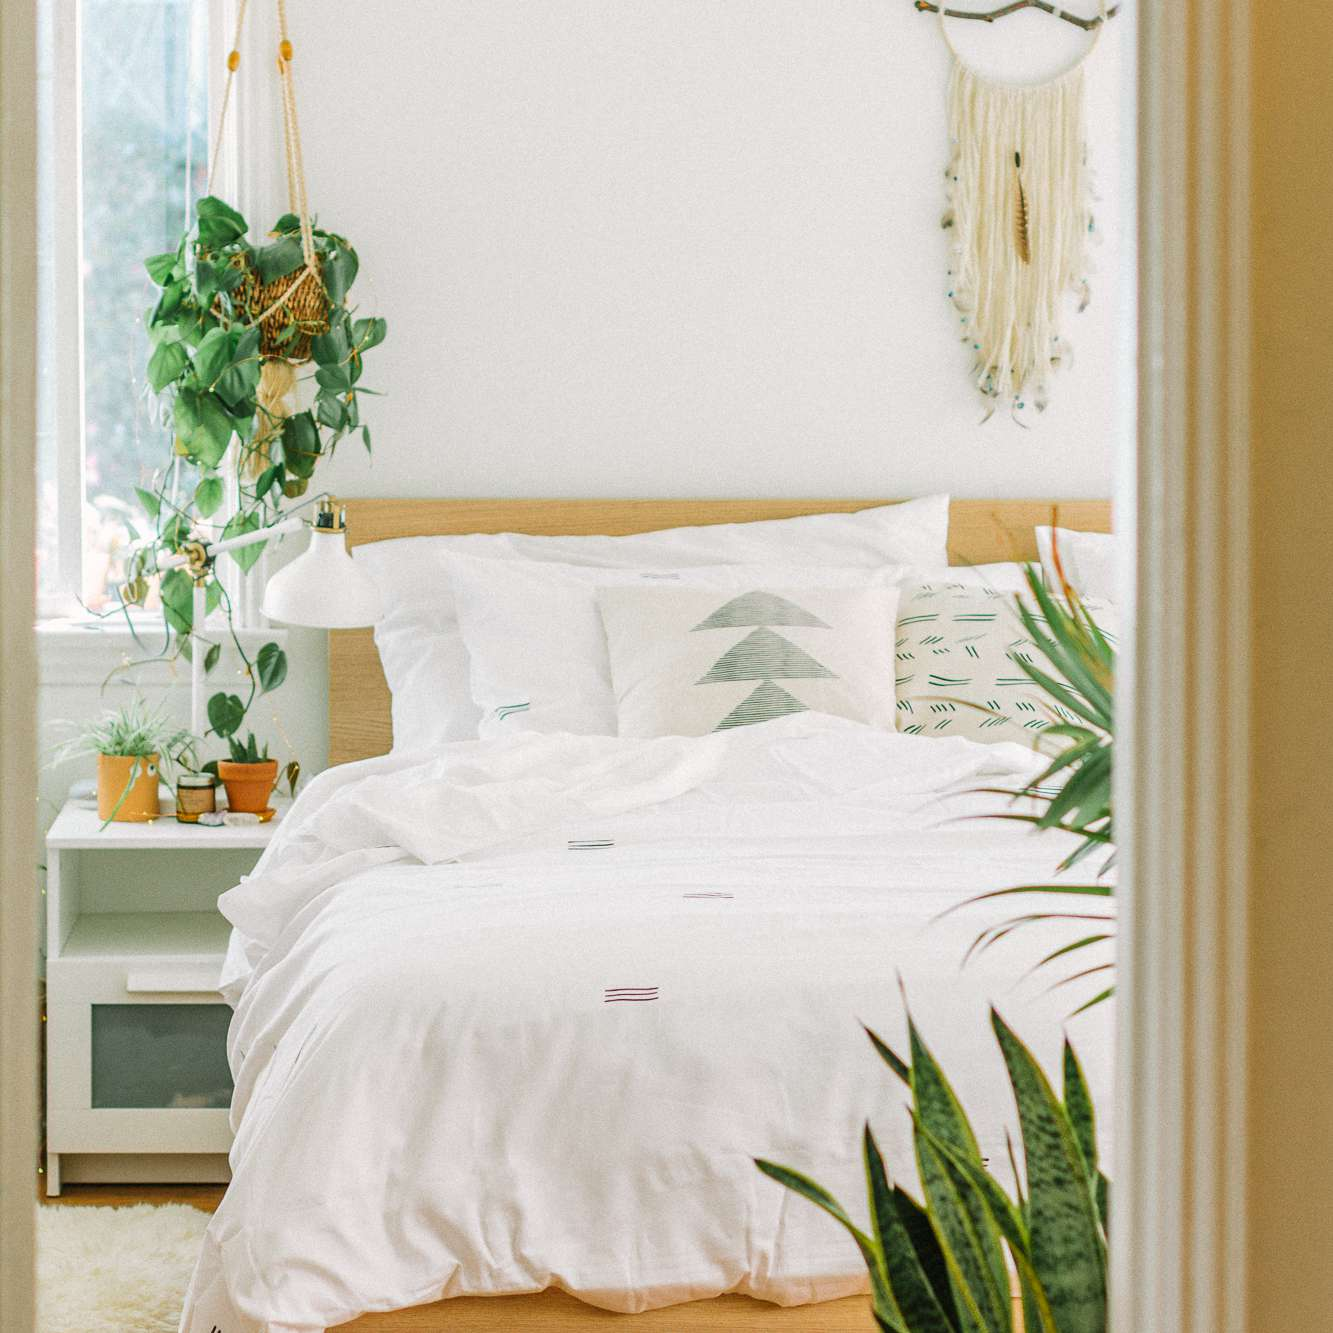 Bedroom with lots of plants and white bedding